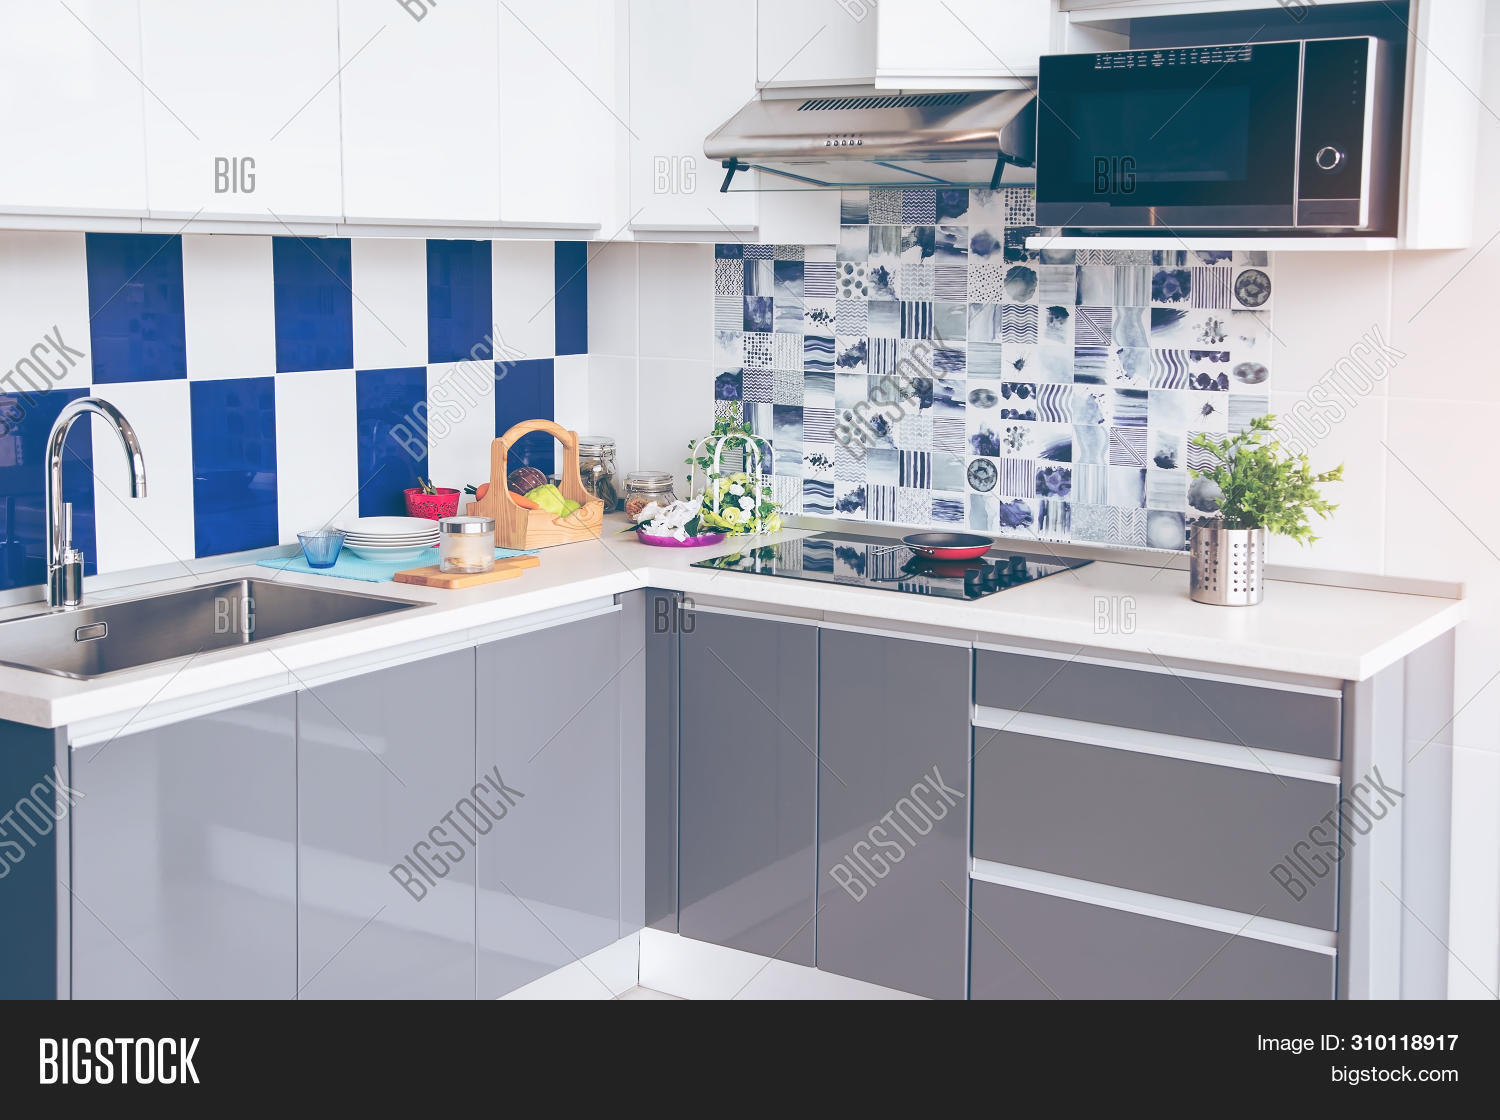 apartment,appliance,architecture,background,black,built,cabinets,ceramic,contemporary,cook,cooker,cooking,cooktop,cookware,counter,decor,design,dining,electric,equipment,floor,food,furnished,furniture,glass,granite,hob,home,hot,house,household,induction,interior,kitchen,lifestyle,luxury,metal,modern,new,object,pan,quartz,room,stainless,steel,stove,technology,top,wall,white